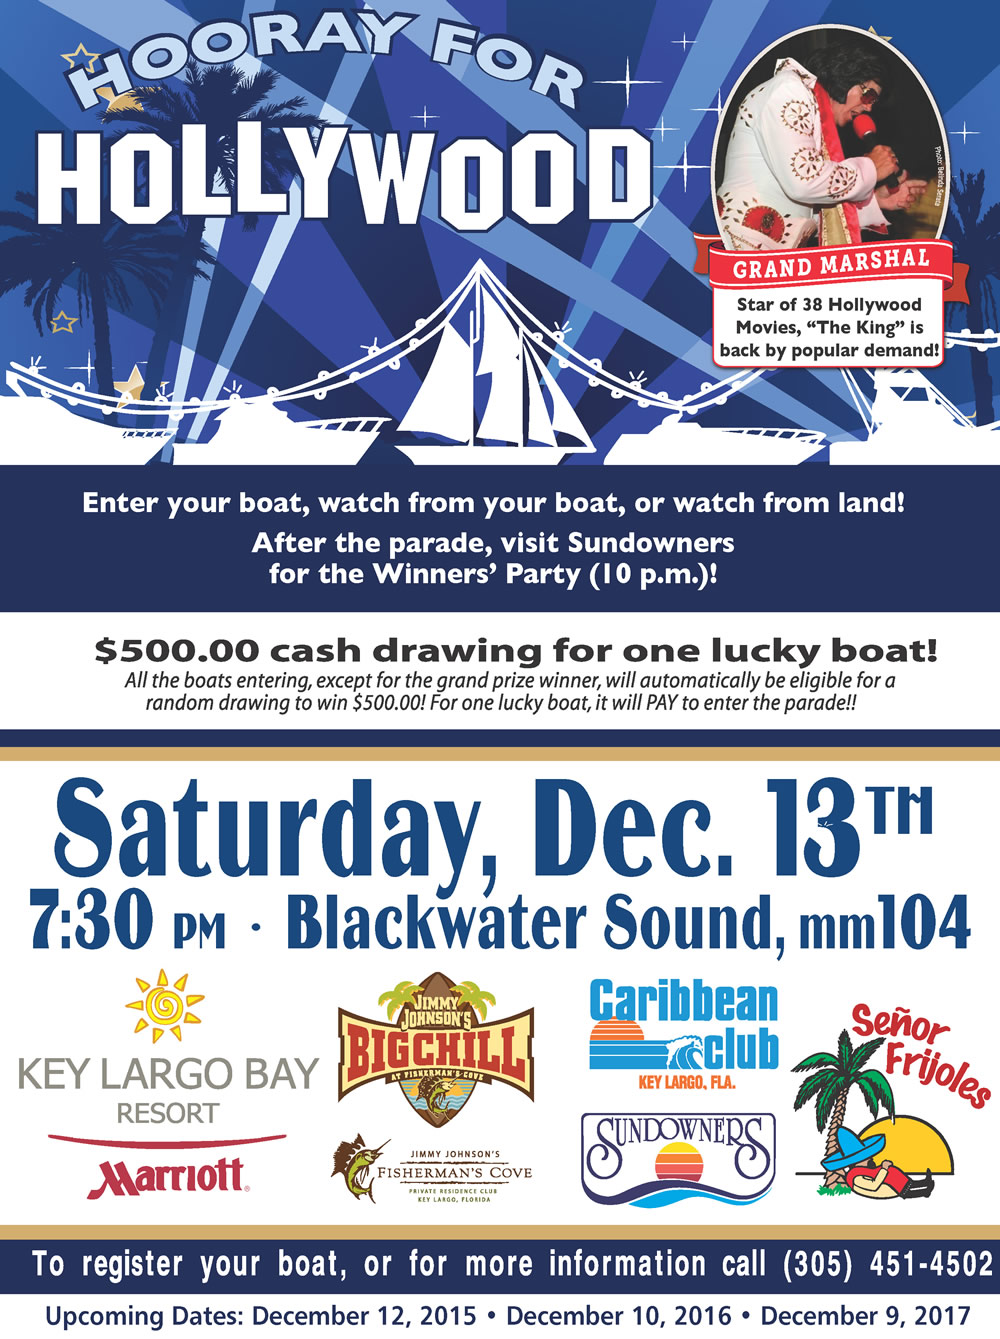 Key Largo Boat Parade